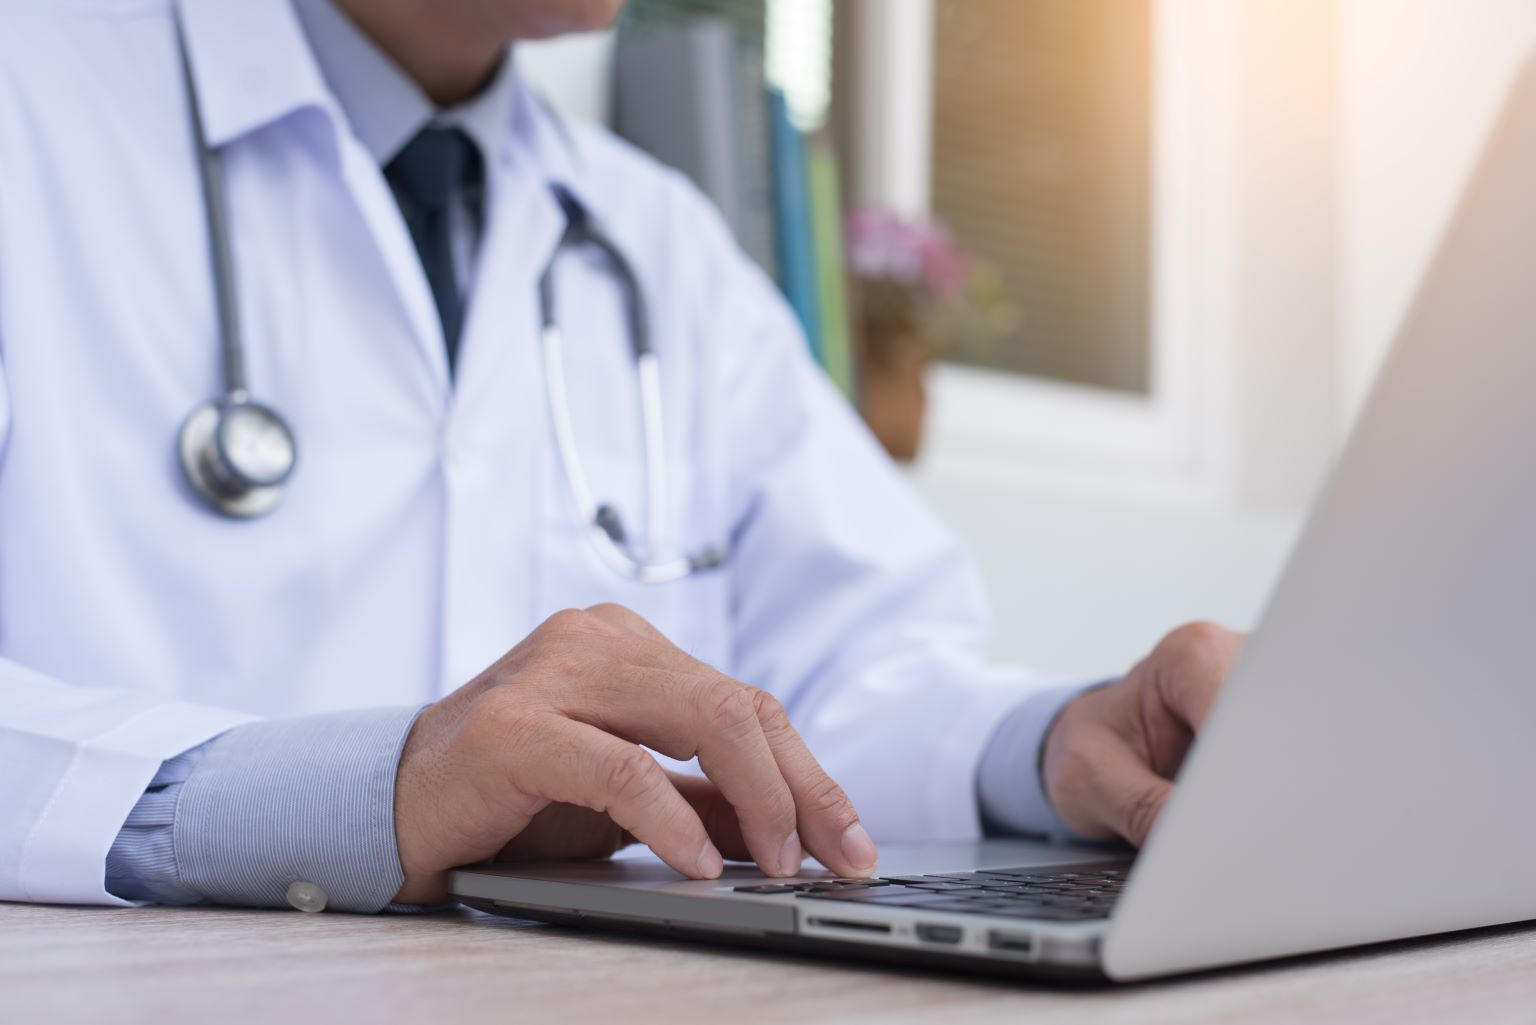 Doctor working on laptop.